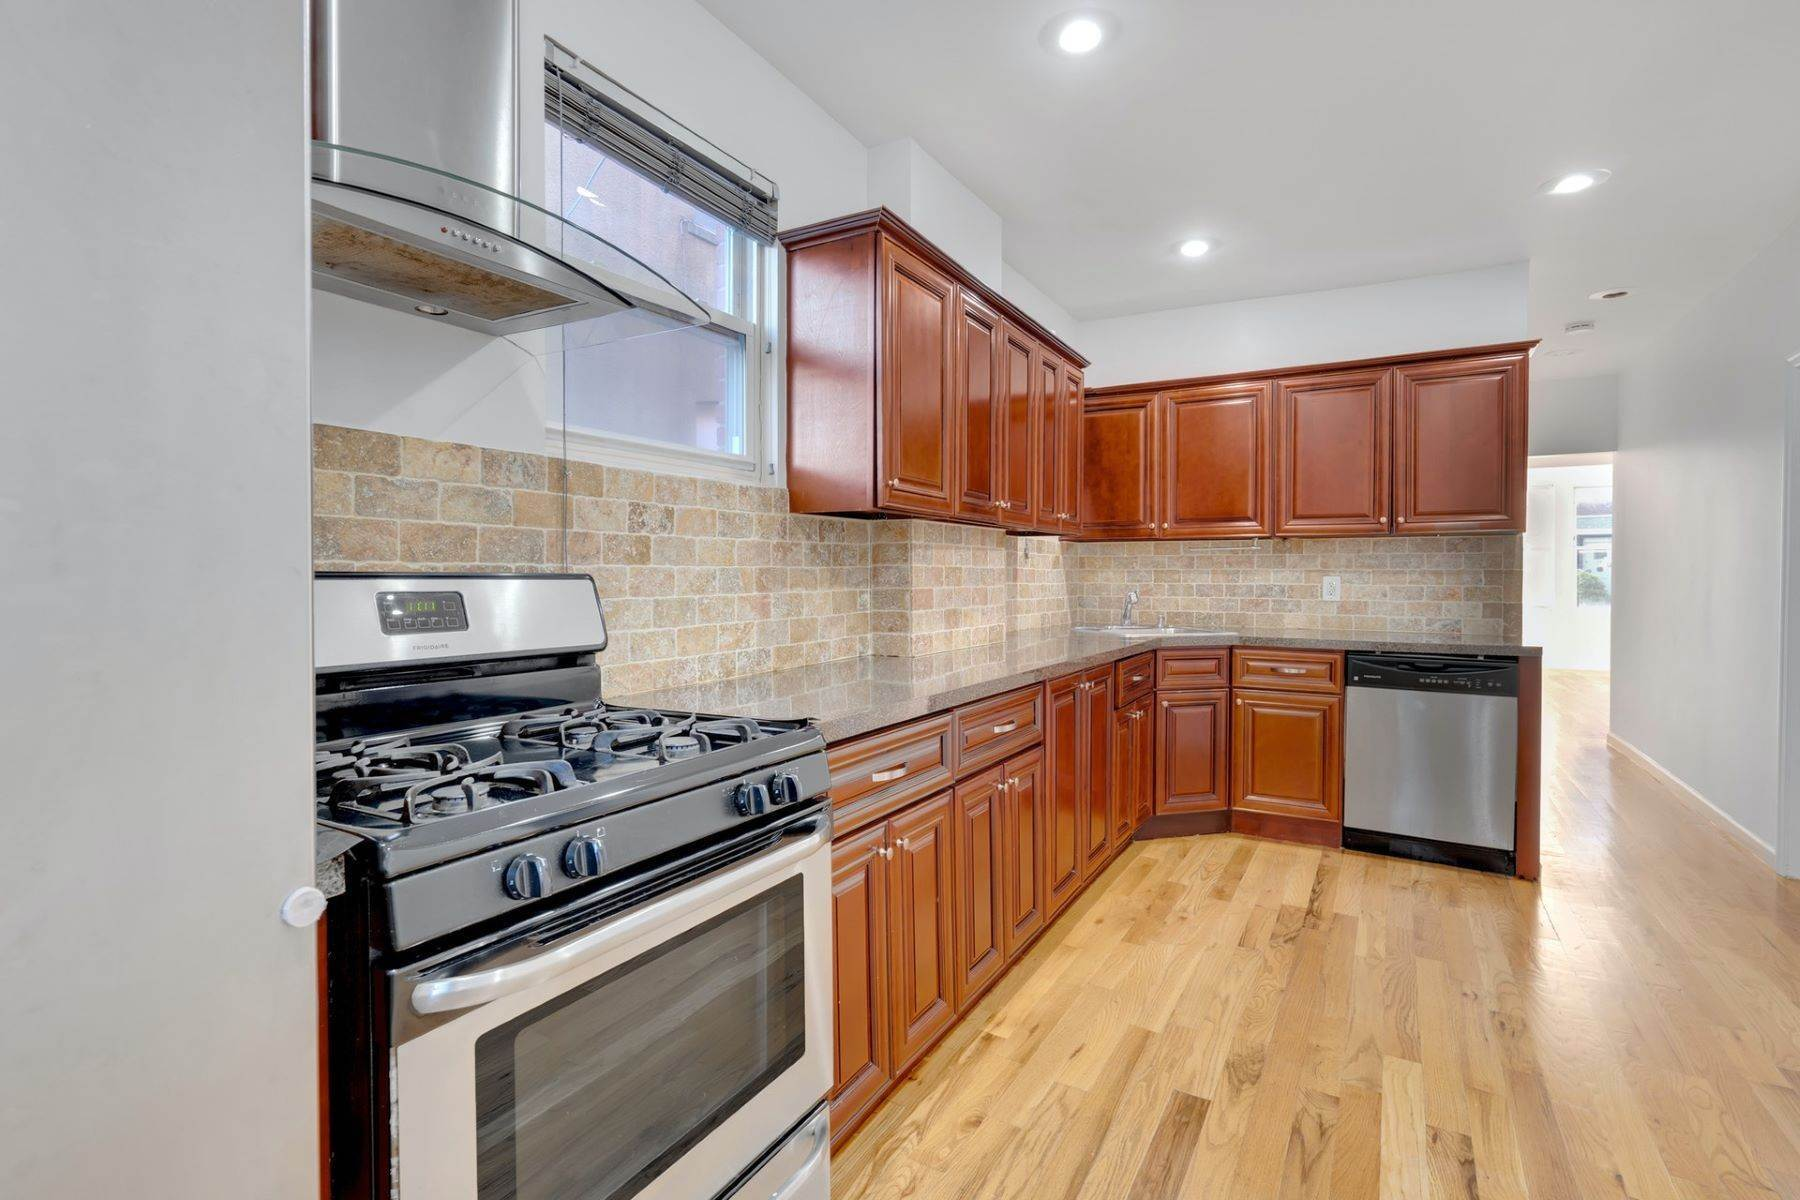 Apartments em 2BD/1BA with private outdoor space! 178 Palisade Avenue, #1, Cliffside Park, Nova Jersey 00000 Estados Unidos